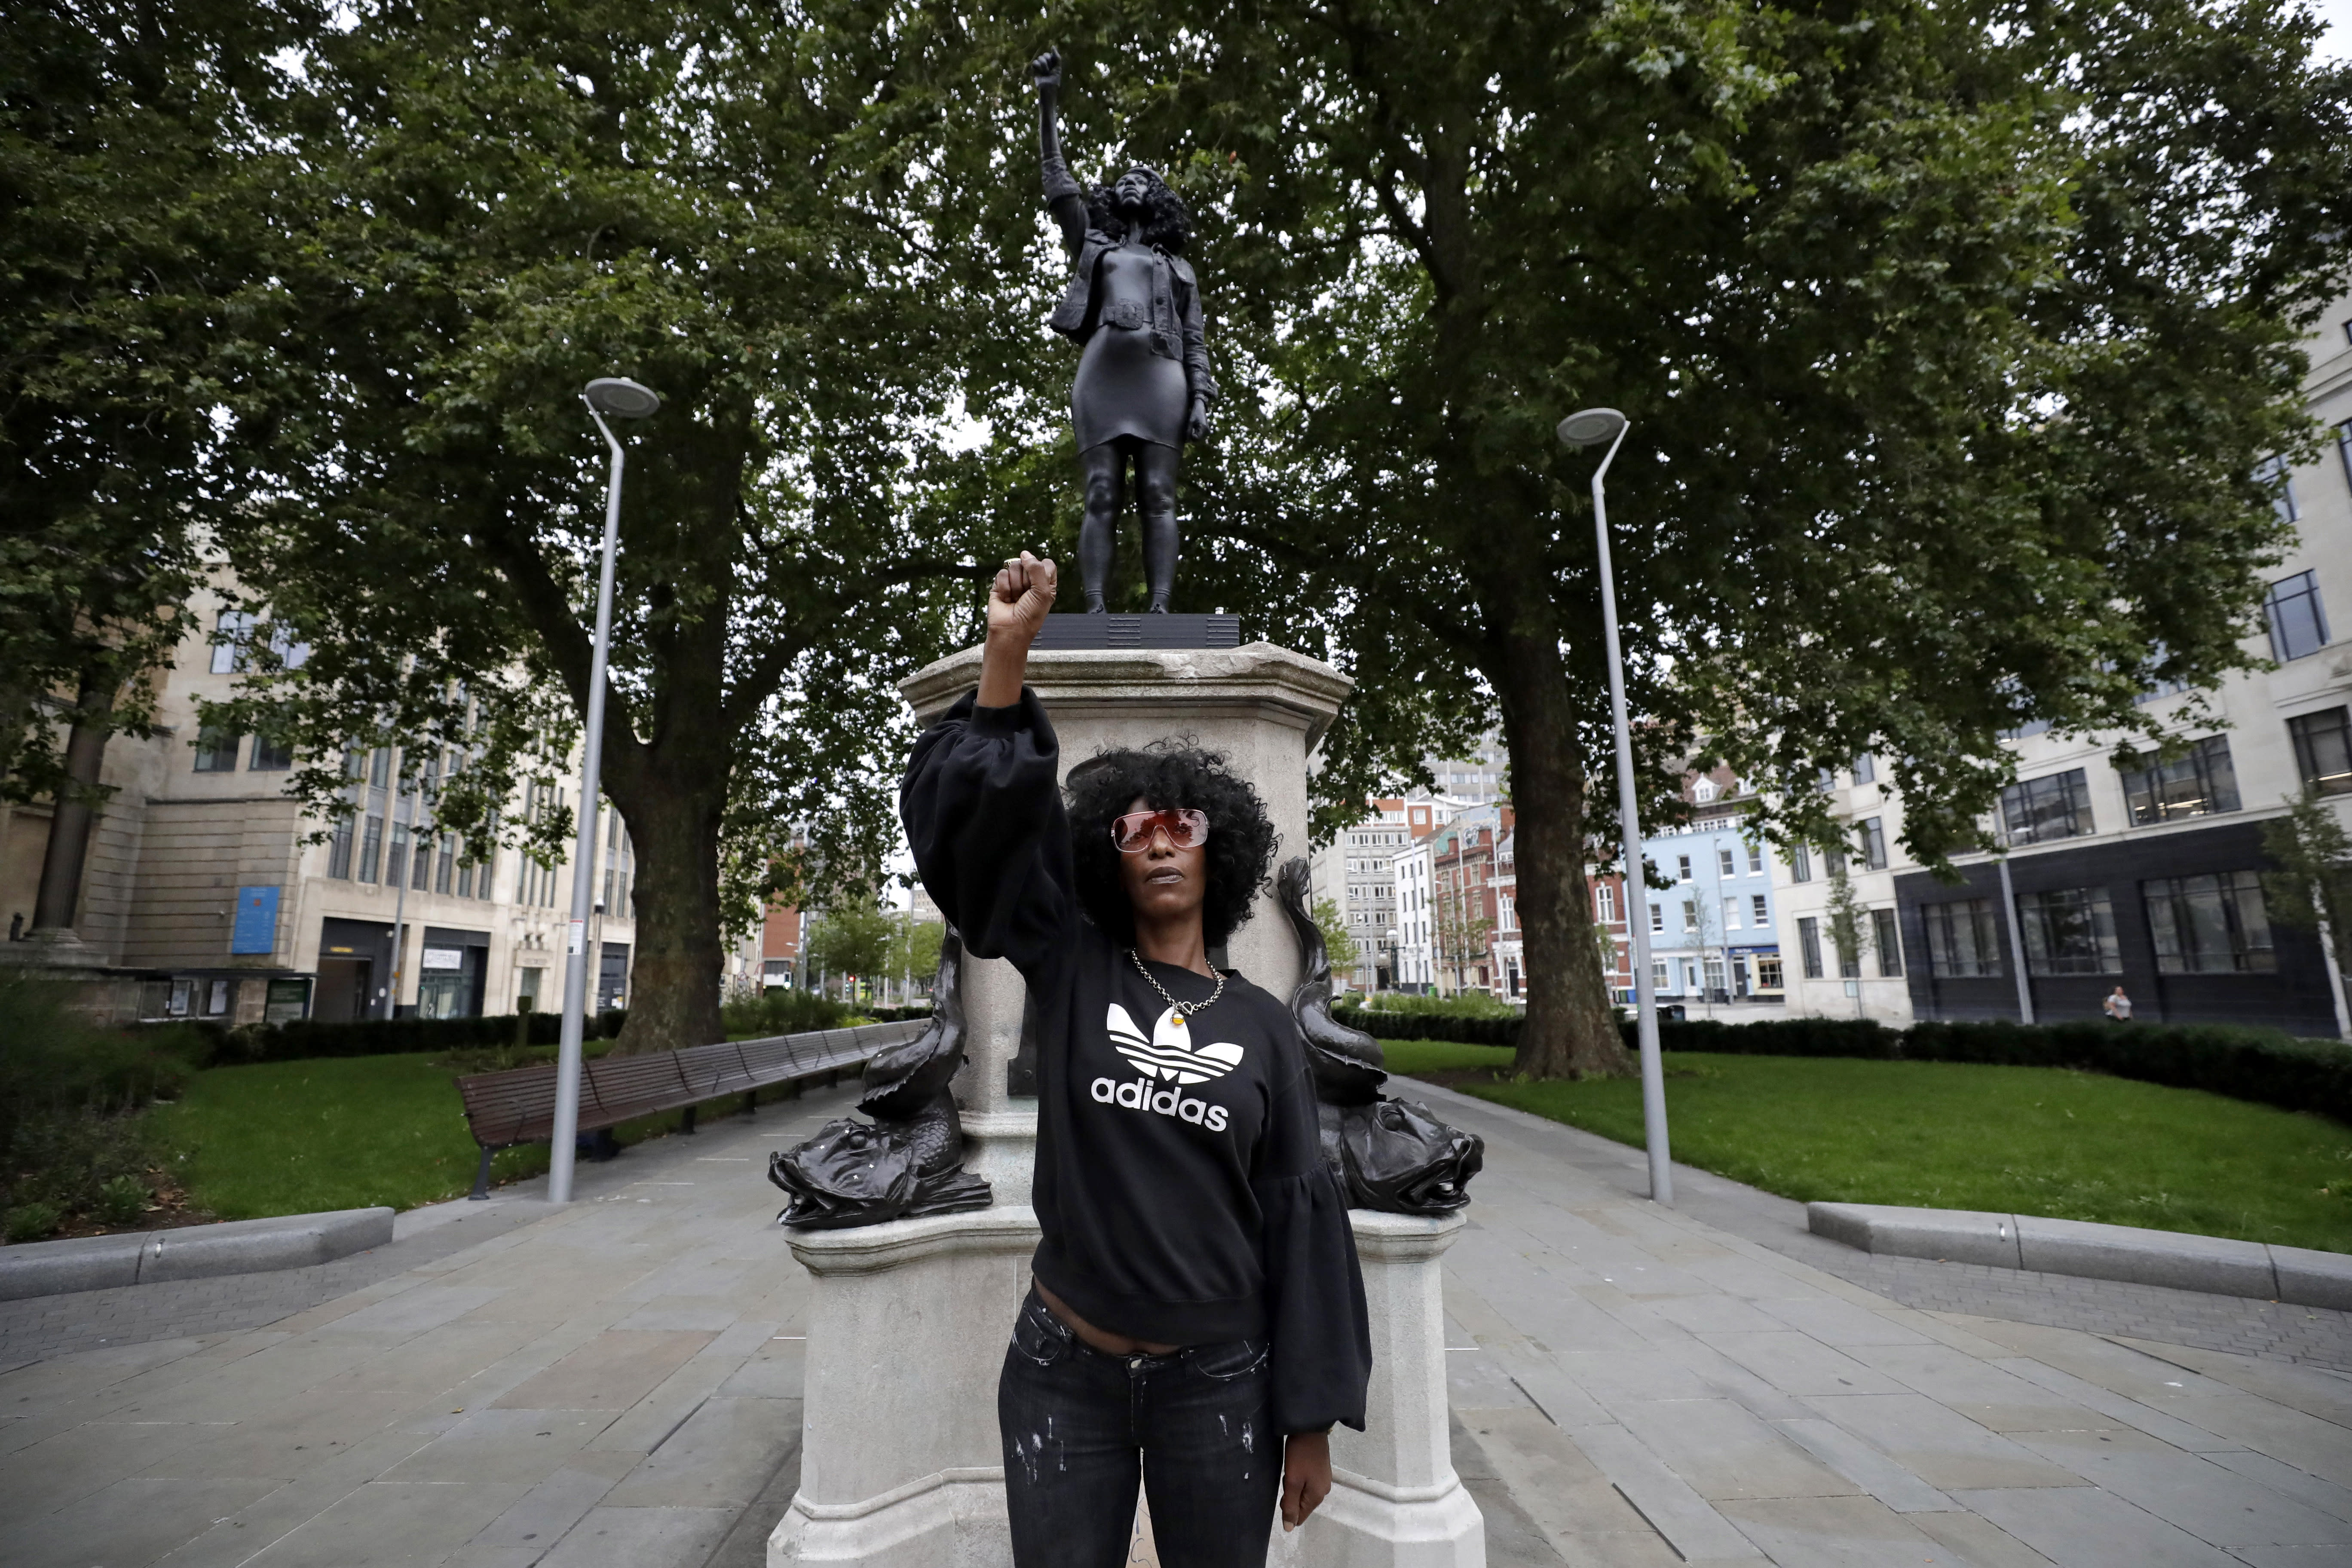 """Jen Reid poses for photographs in front of the new black resin and steel statue portraying her, entitled """"A Surge of Power (Jen Reid) 2020"""" by artist Marc Quinn after the statue was put up this morning on the empty plinth of the toppled statue of 17th century slave trader Edward Colston, which was pulled down during a Black Lives Matter protest in Bristol, England, Wednesday, July 15, 2020. On June 7 anti-racism demonstrators pulled the 18-foot (5.5 meter) bronze likeness of Colston down, dragged it to the nearby harbor and dumped it in the River Avon — sparking both delight and dismay in Britain and beyond. (AP Photo/Matt Dunham)"""